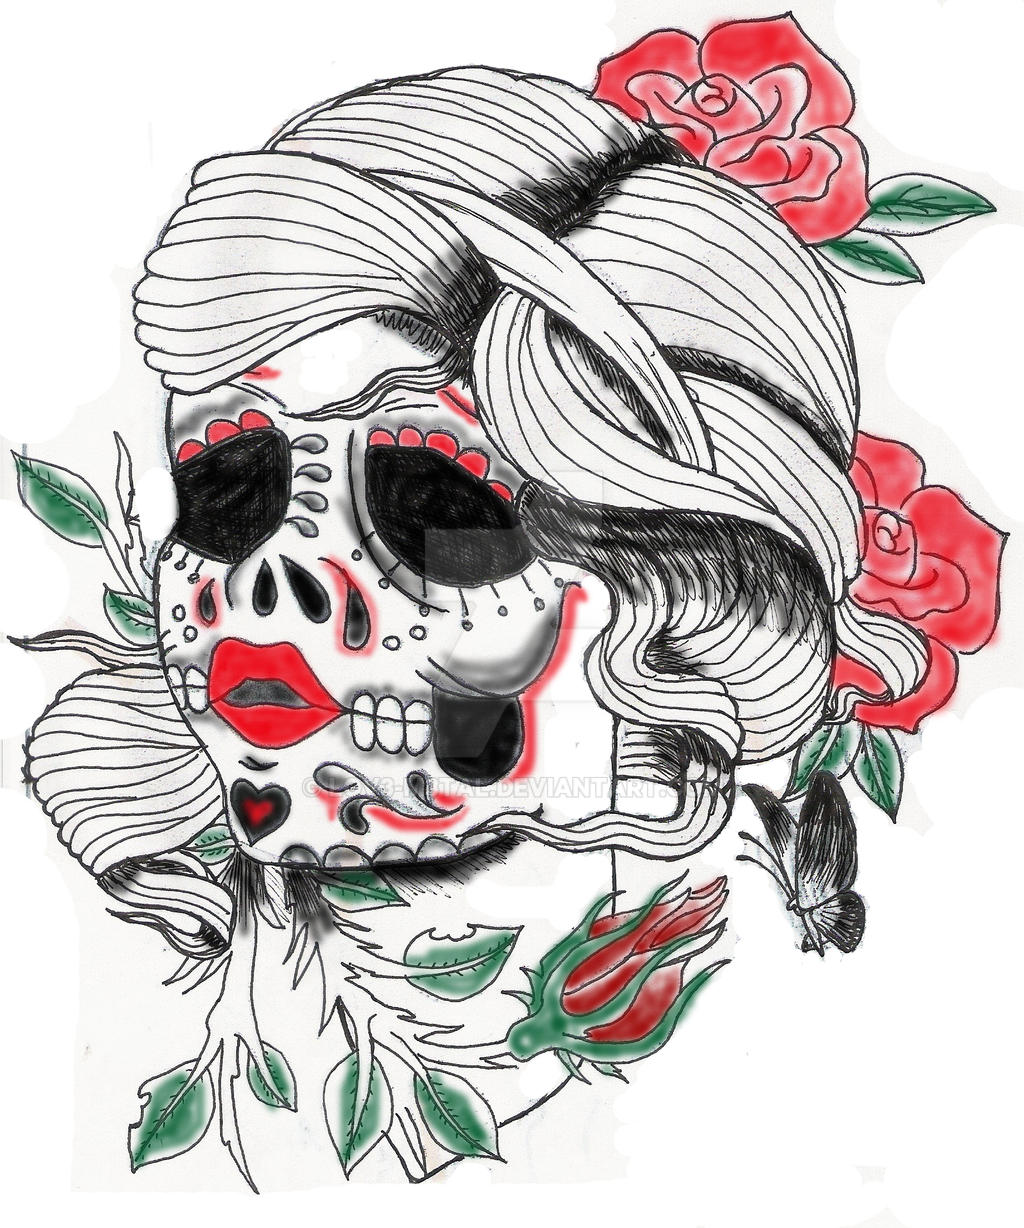 Skulls Tattoo Design Wallpaper: Sugar Skull Tattoo Design By Lov3-m3tal On DeviantArt